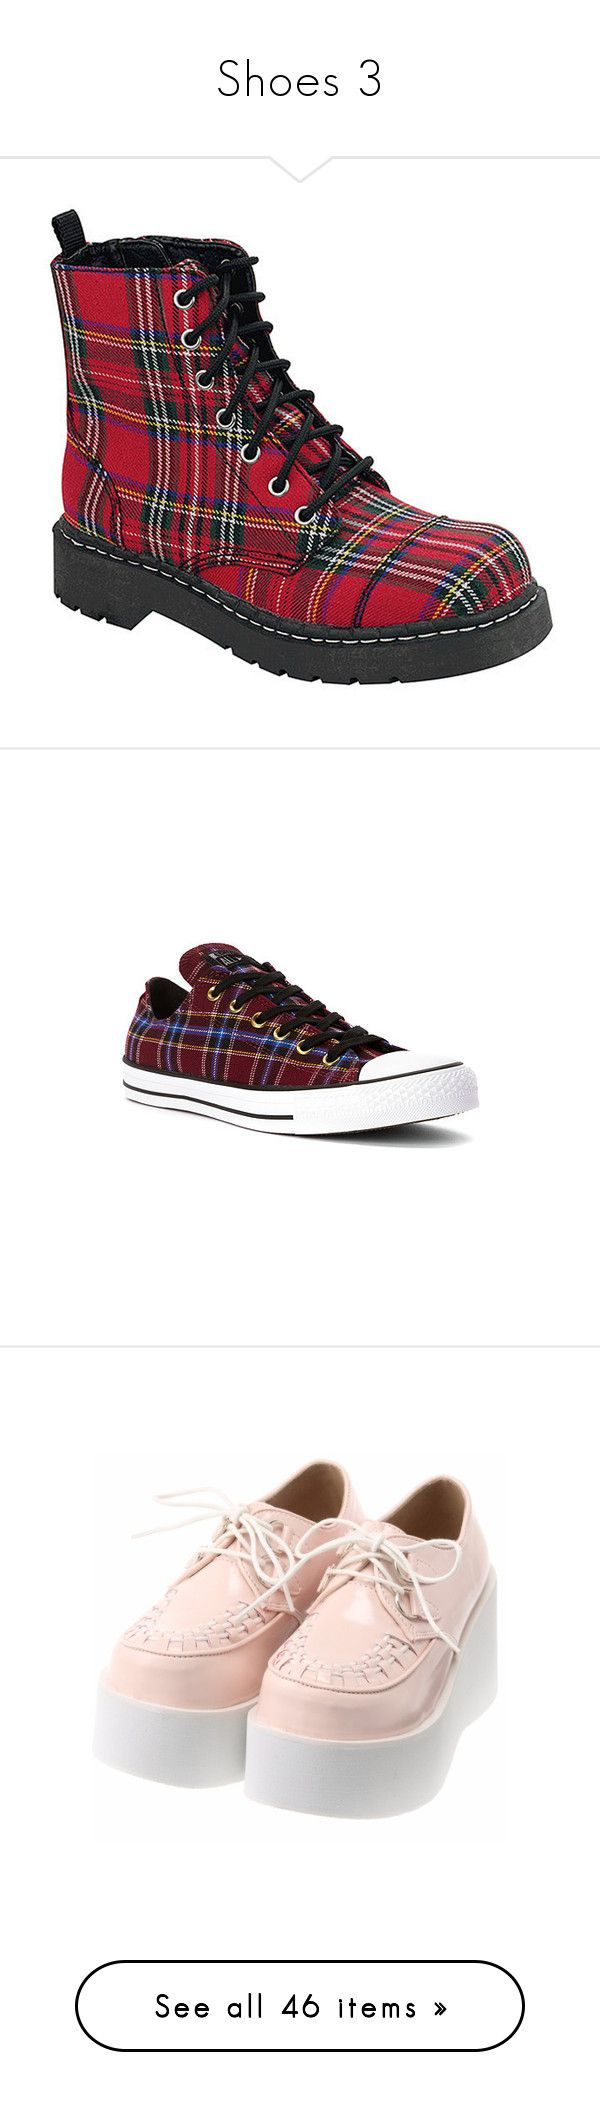 """""""Shoes 3"""" by chemicalfallout249 ❤ liked on Polyvore featuring shoes, boots, red tartan shoes, plaid combat boots, military boots, red shoes, tartan boots, sneakers, athletic-inspired and women's"""